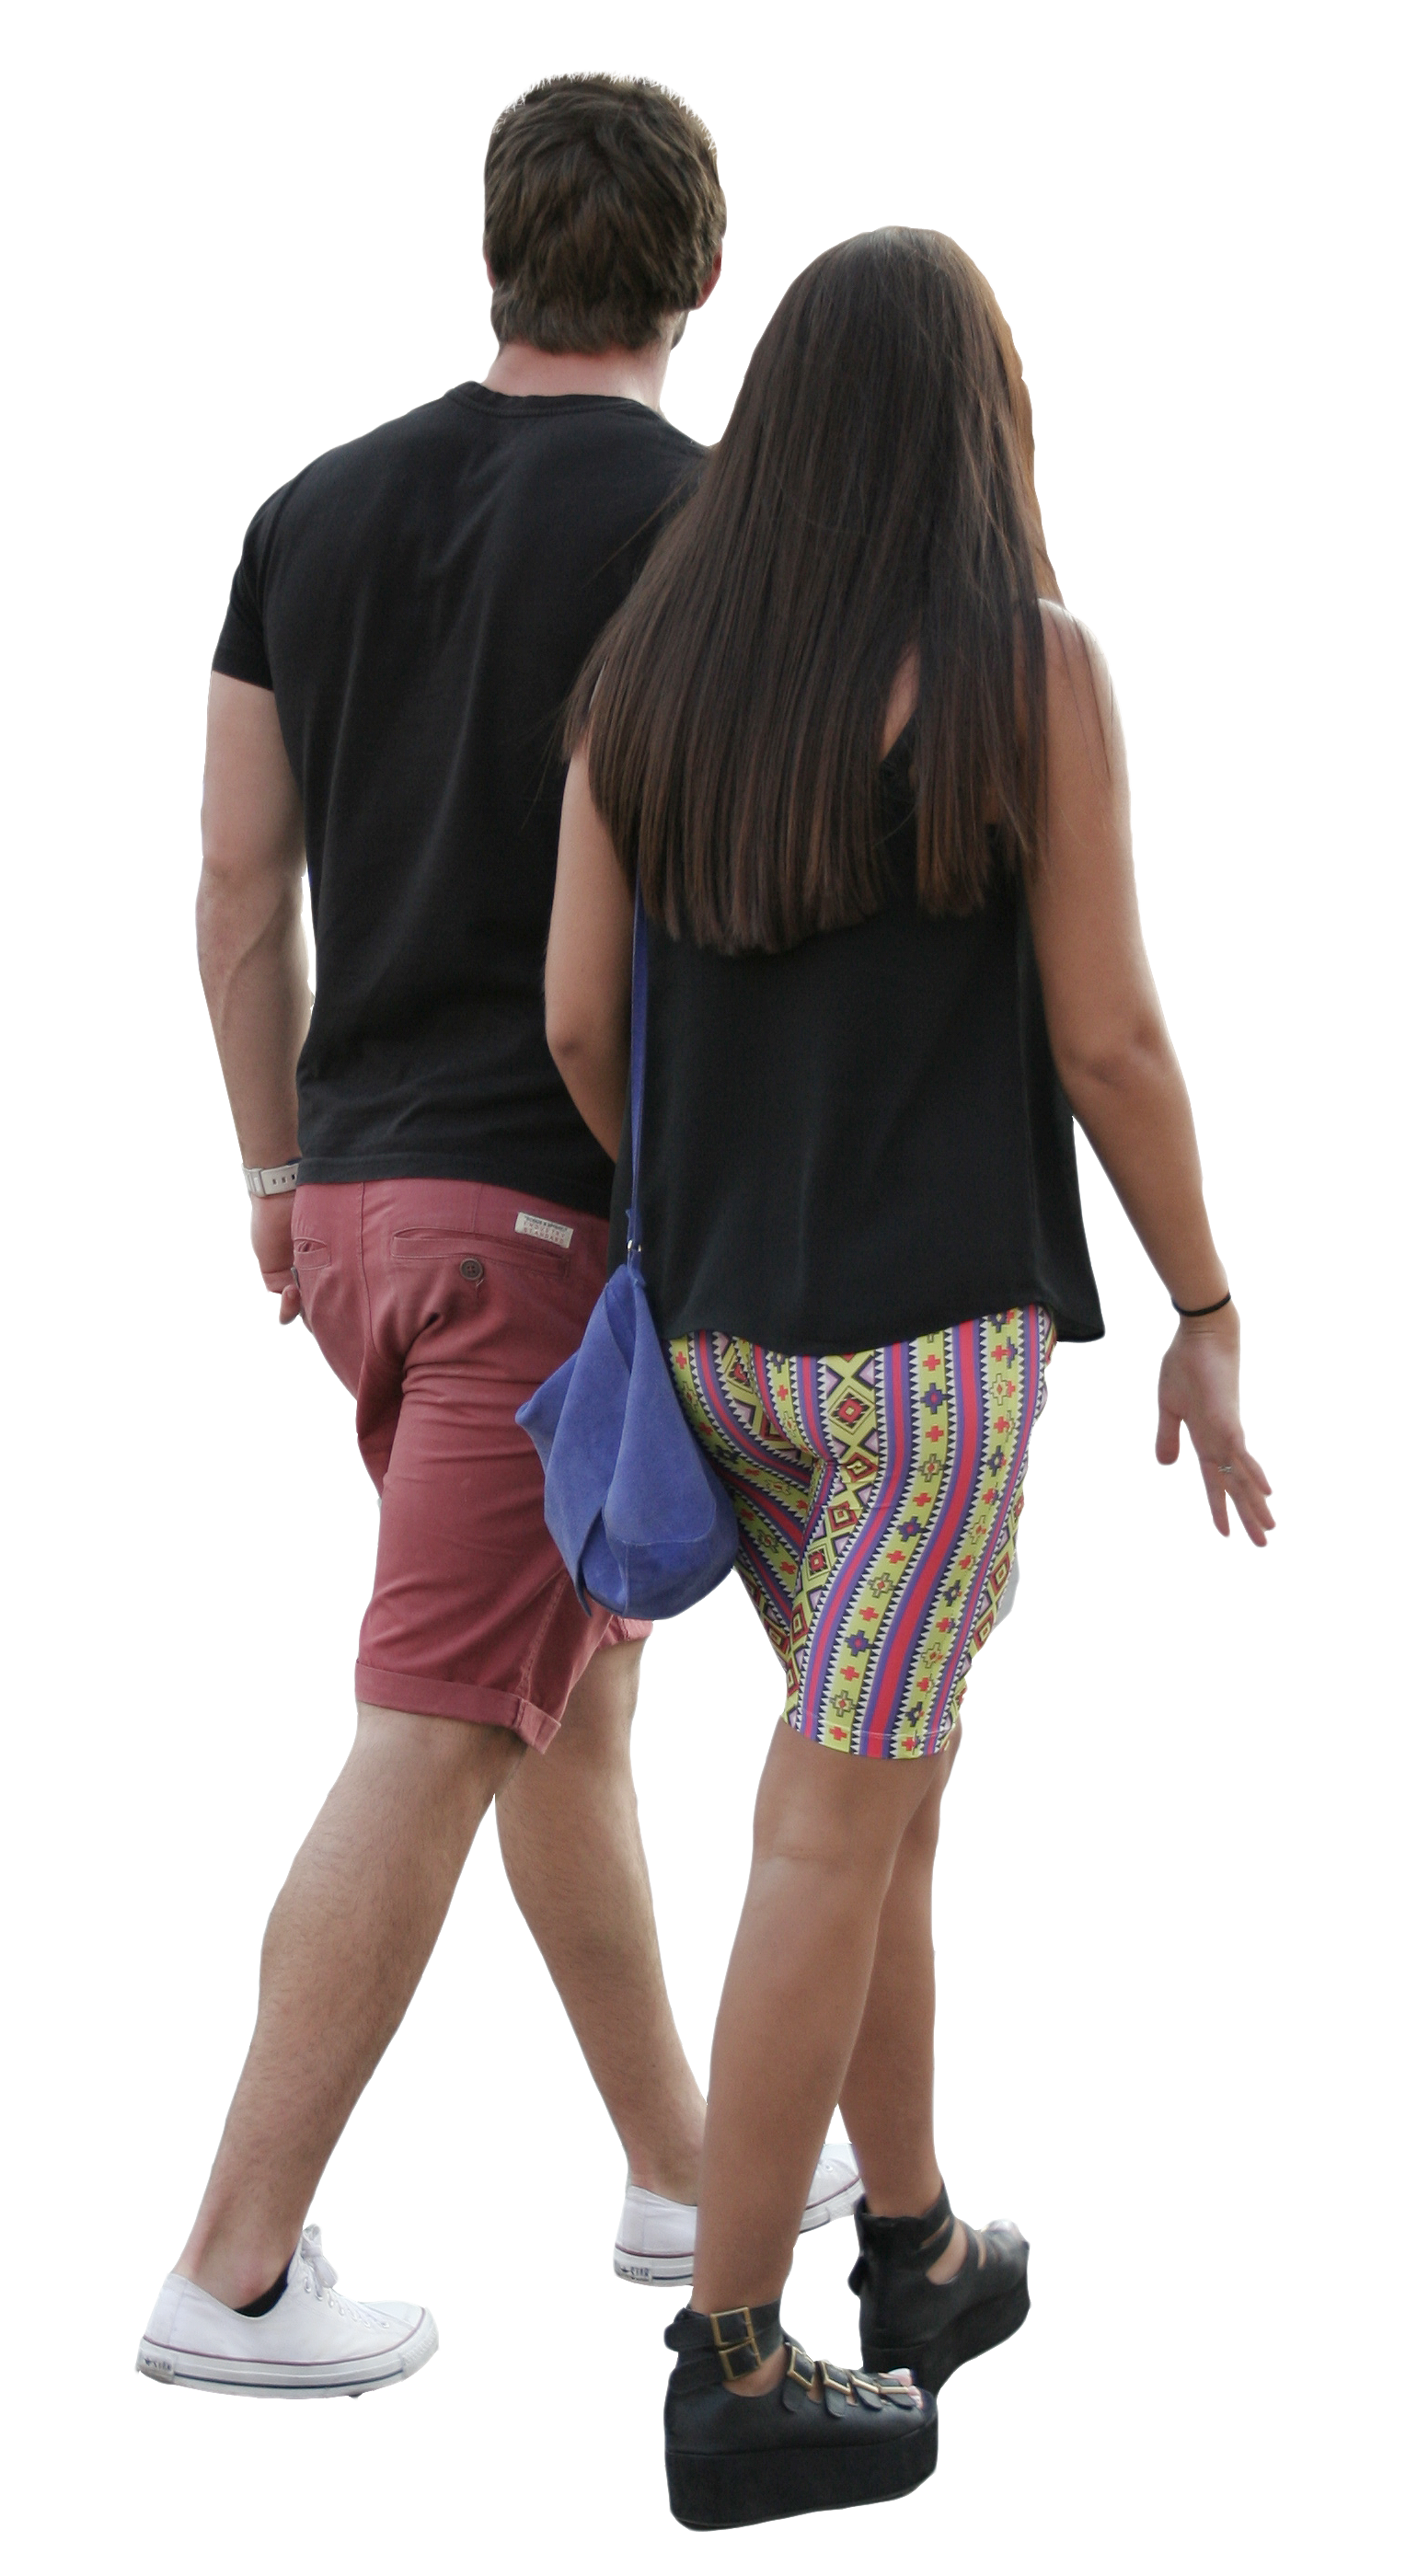 people png transparent people images pluspng #11770